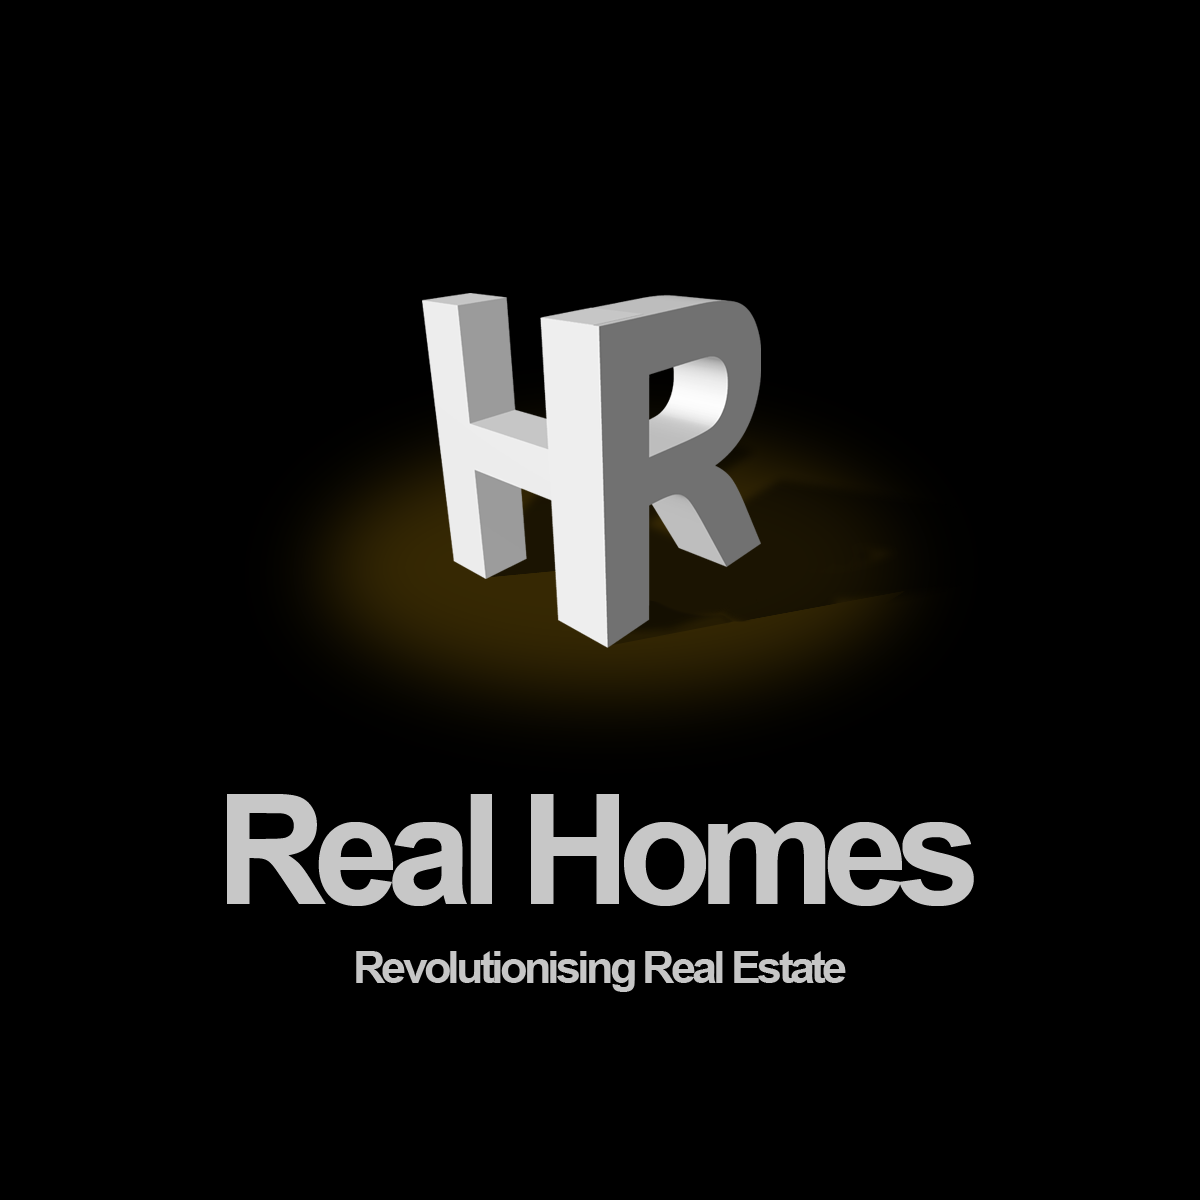 Logo Design by Oussama Hafaiedh - Entry No. 262 in the Logo Design Contest Captivating Logo Design for Real Homes.